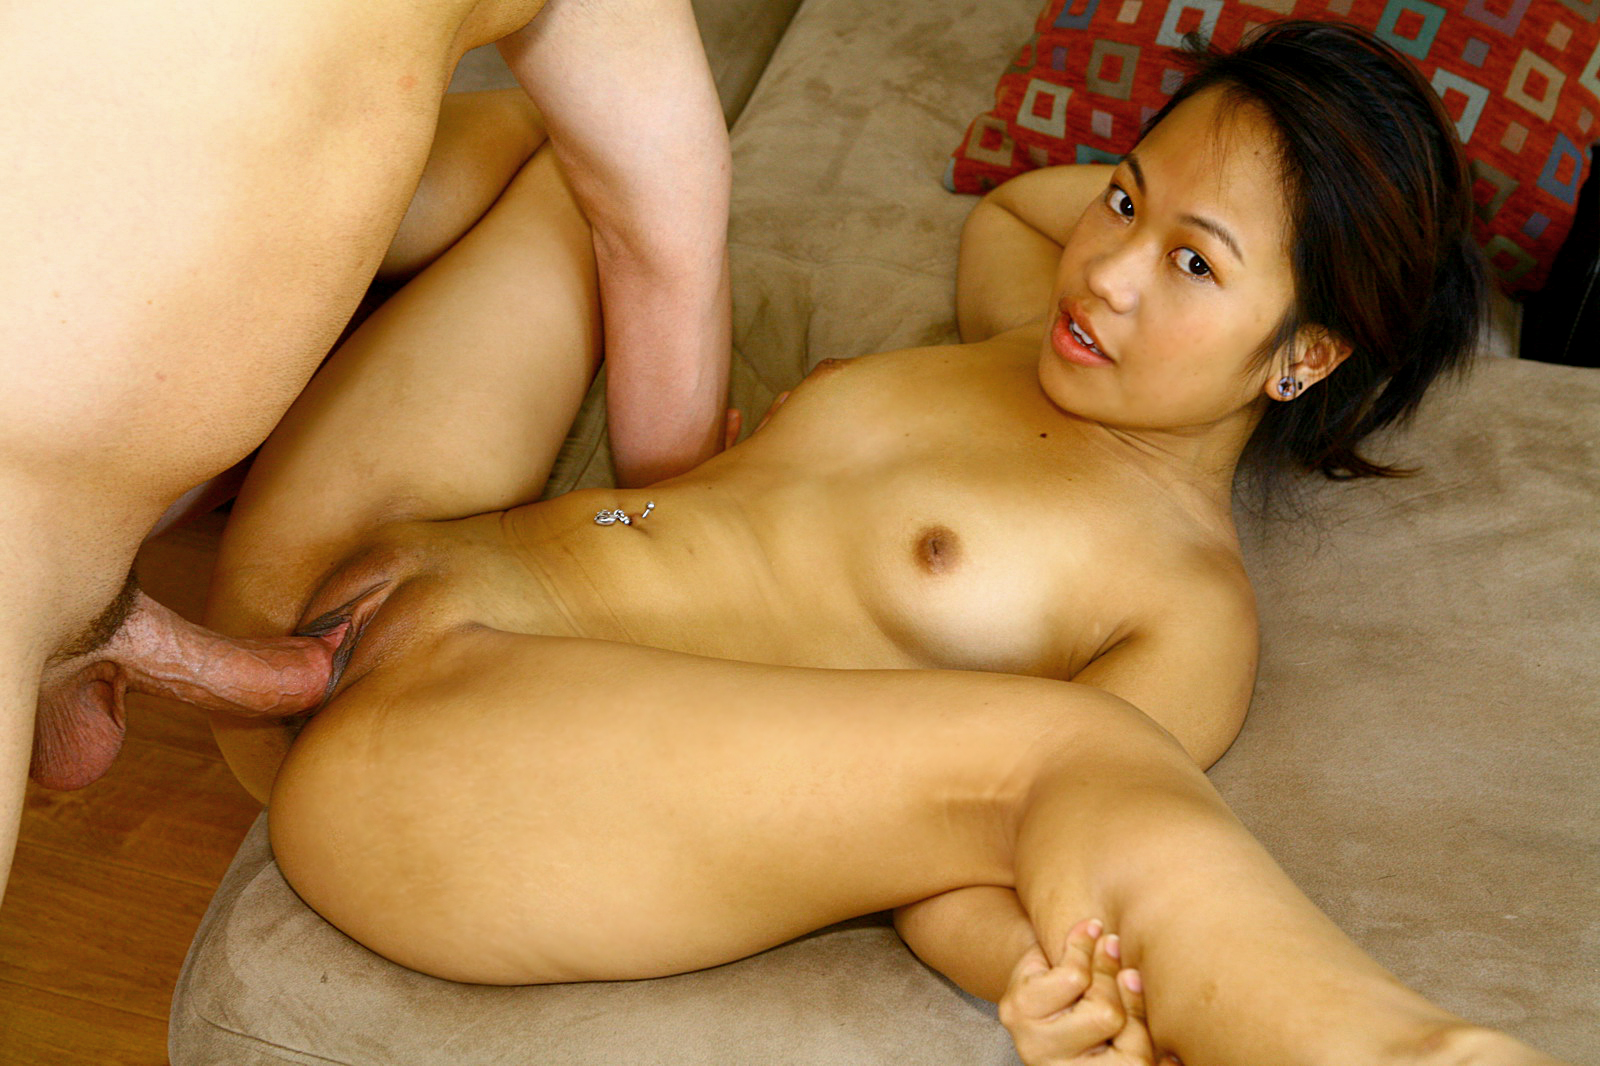 fucking asian girls